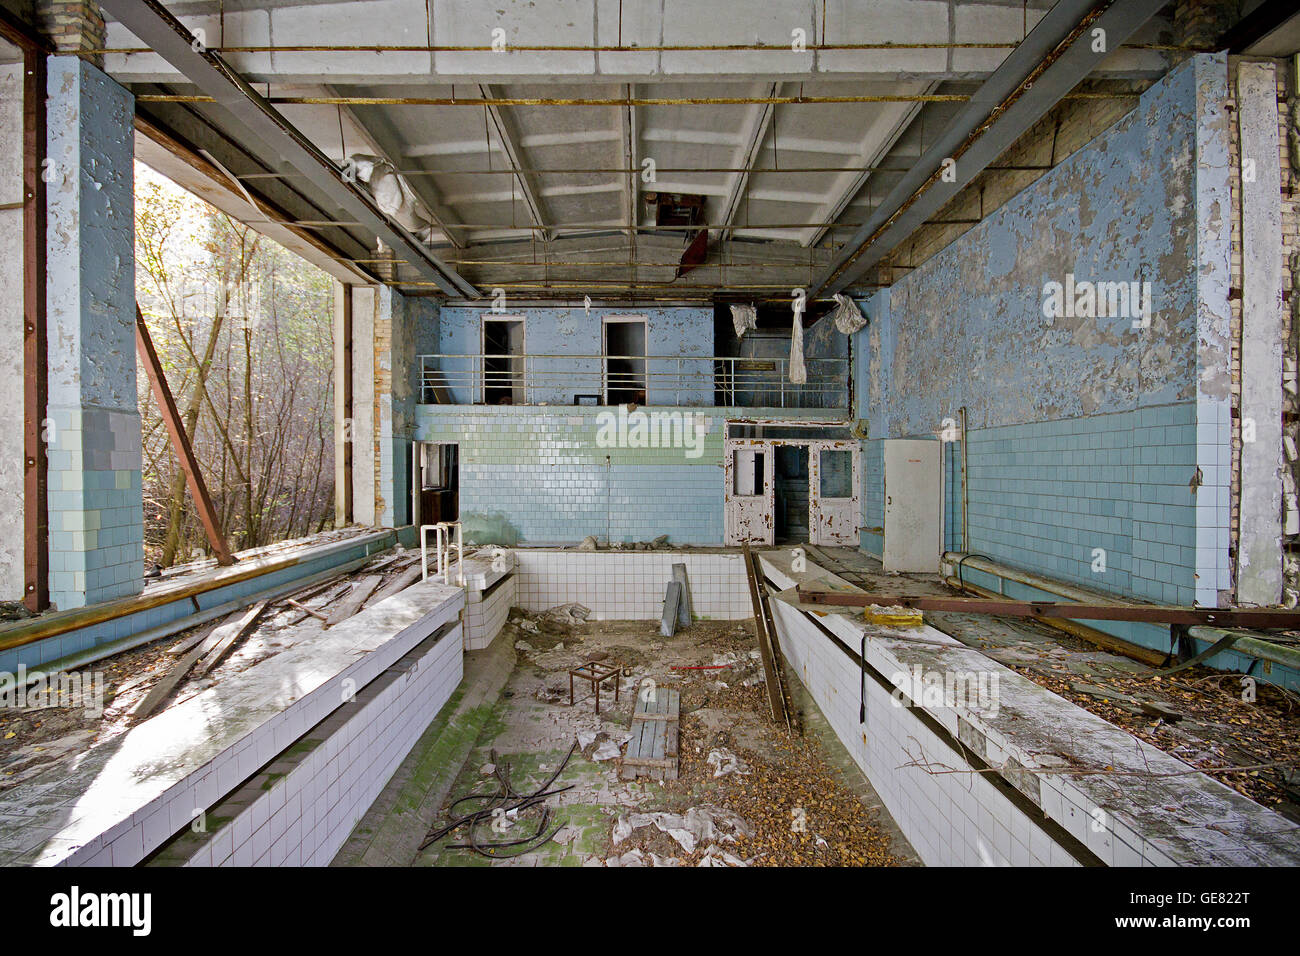 Swimming pool in the abandoned town of Pripyat, Chernobyl exclusion zone, Ukraine. - Stock Image